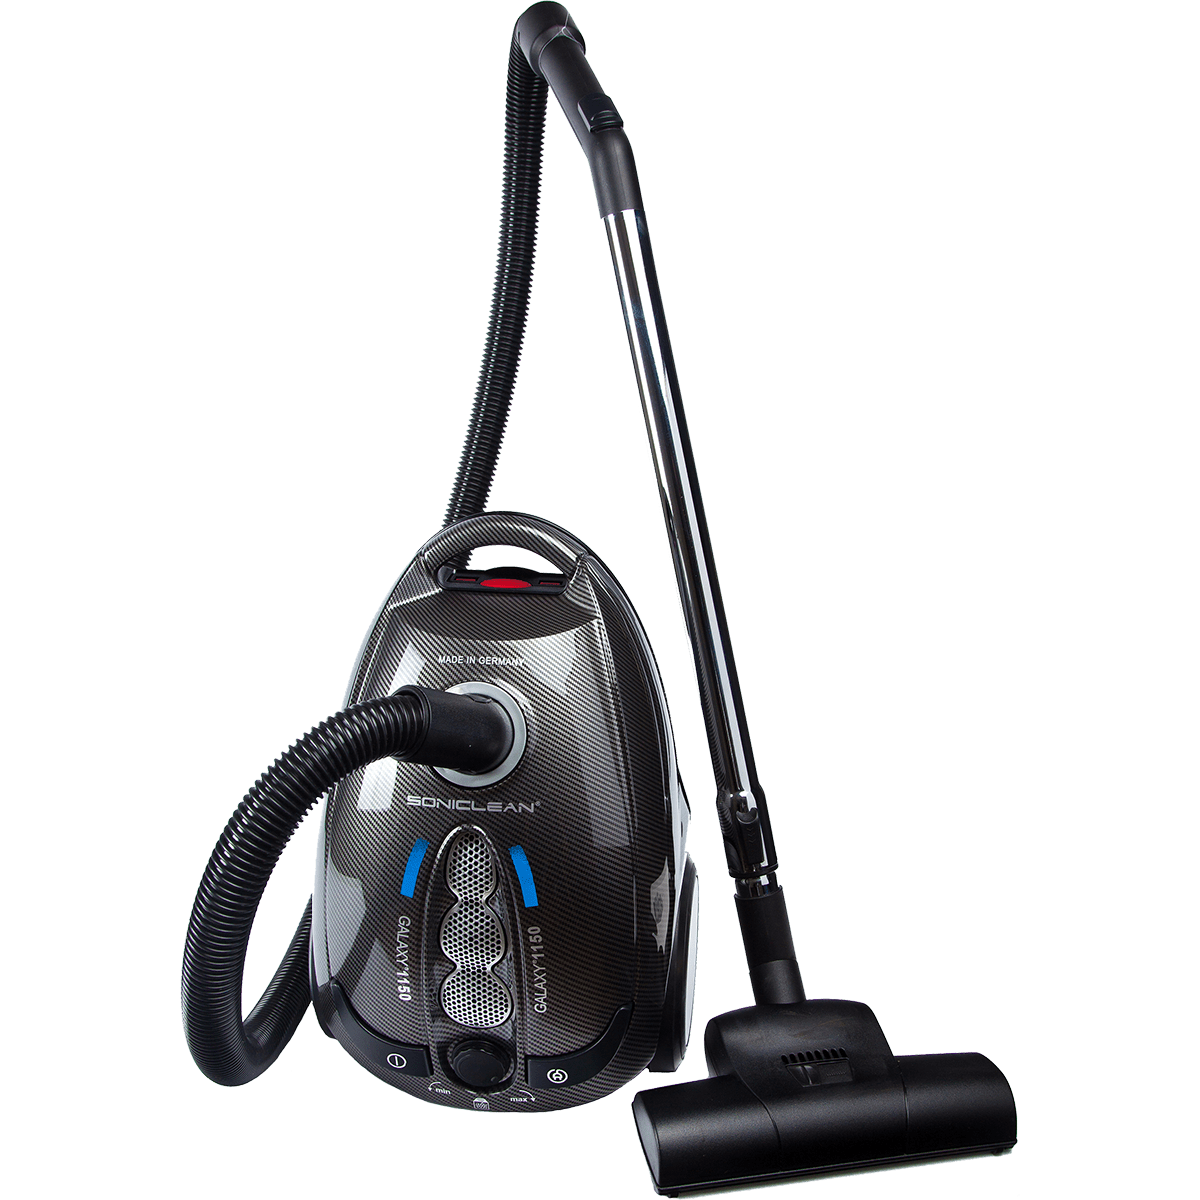 soniclean galaxy canister vacuum - Canister Vacuum Reviews